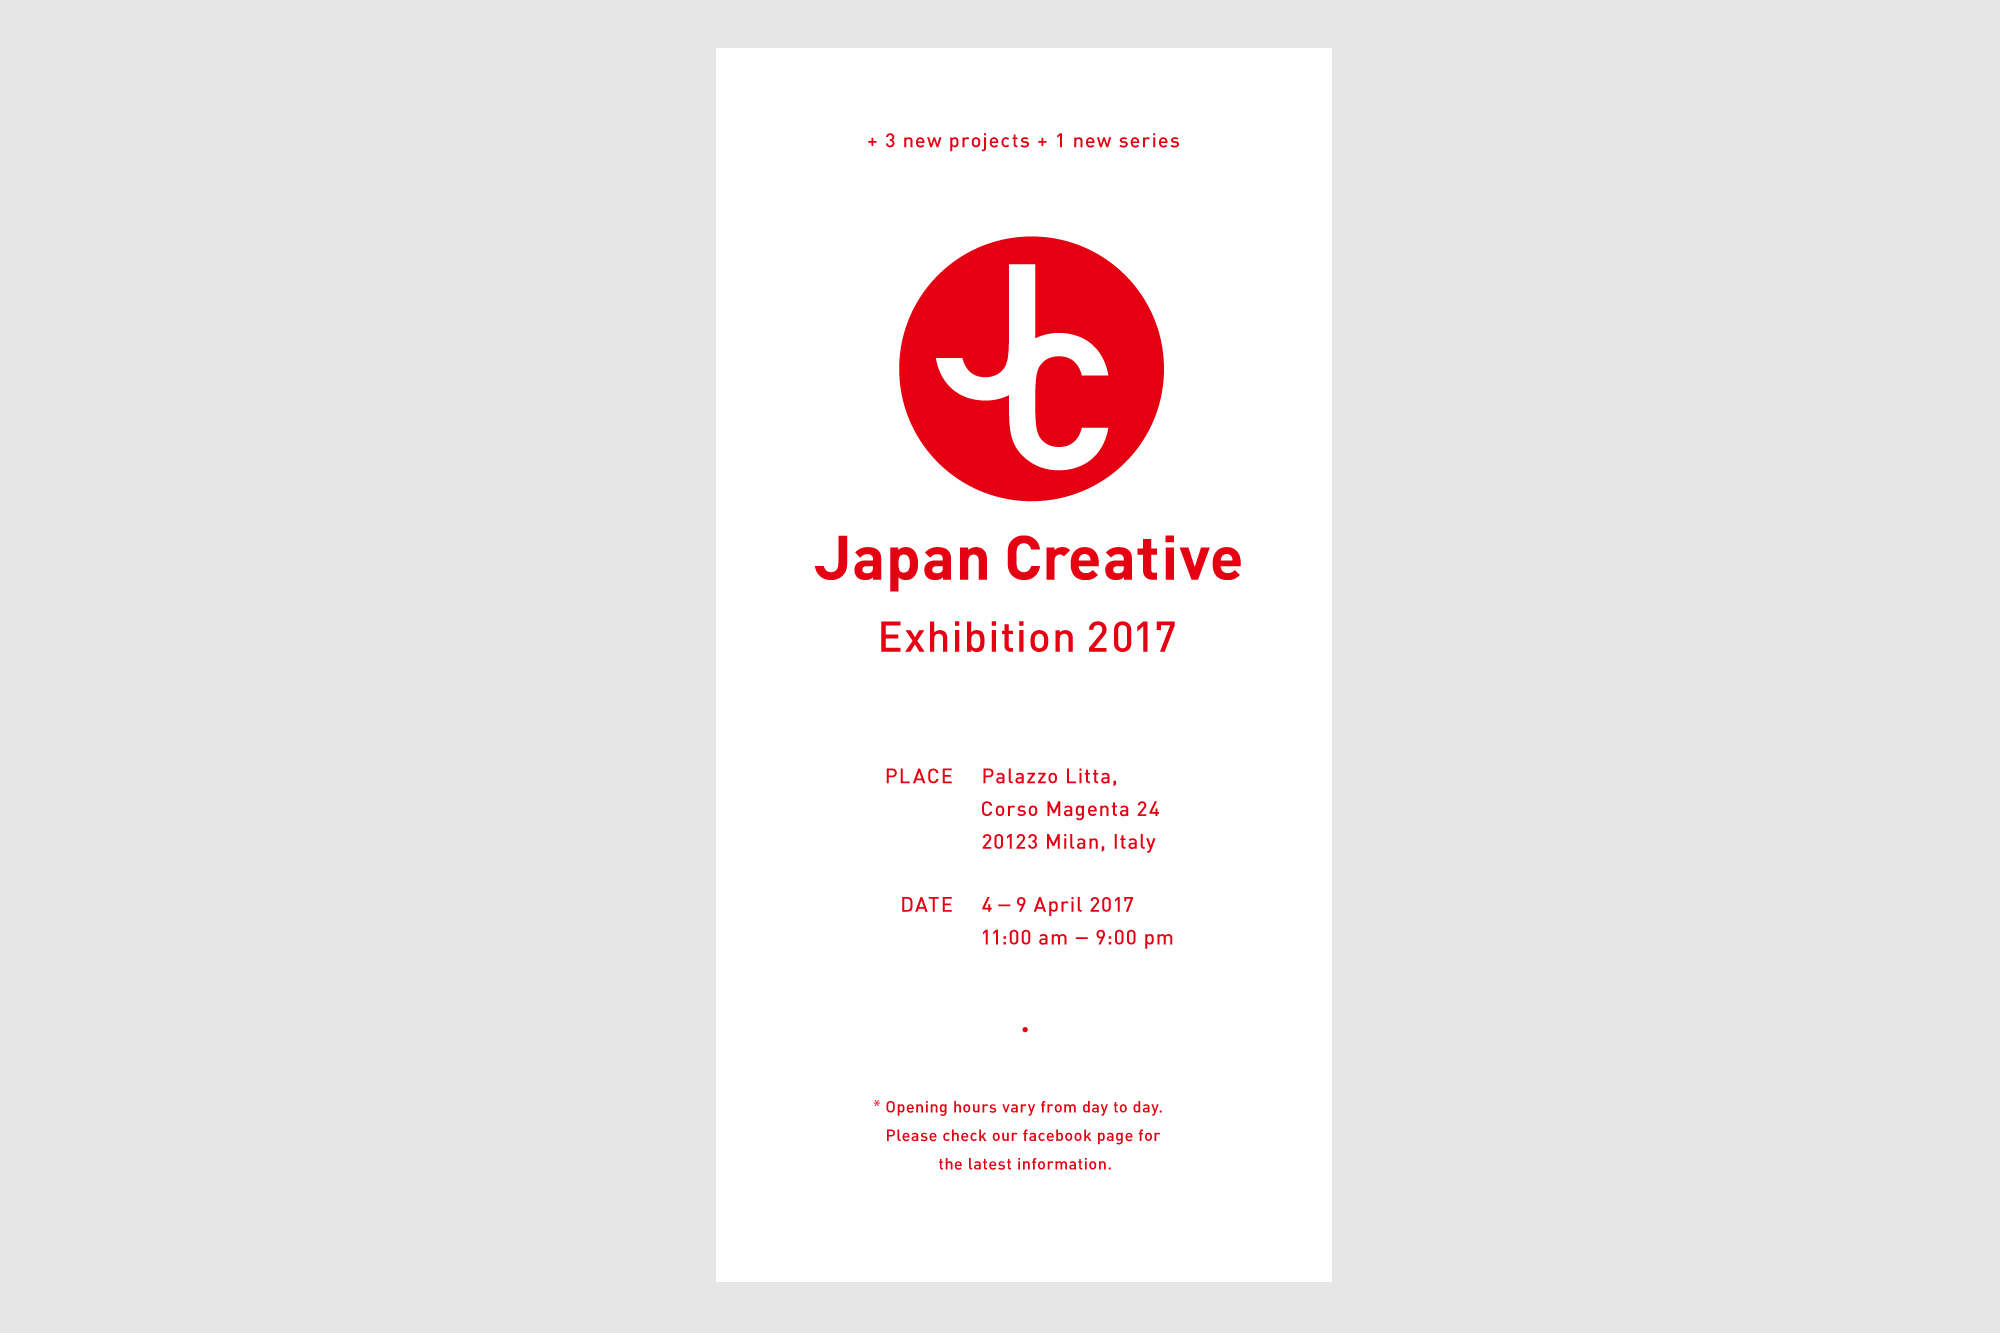 Japan Creative Exhibition Milano 2017